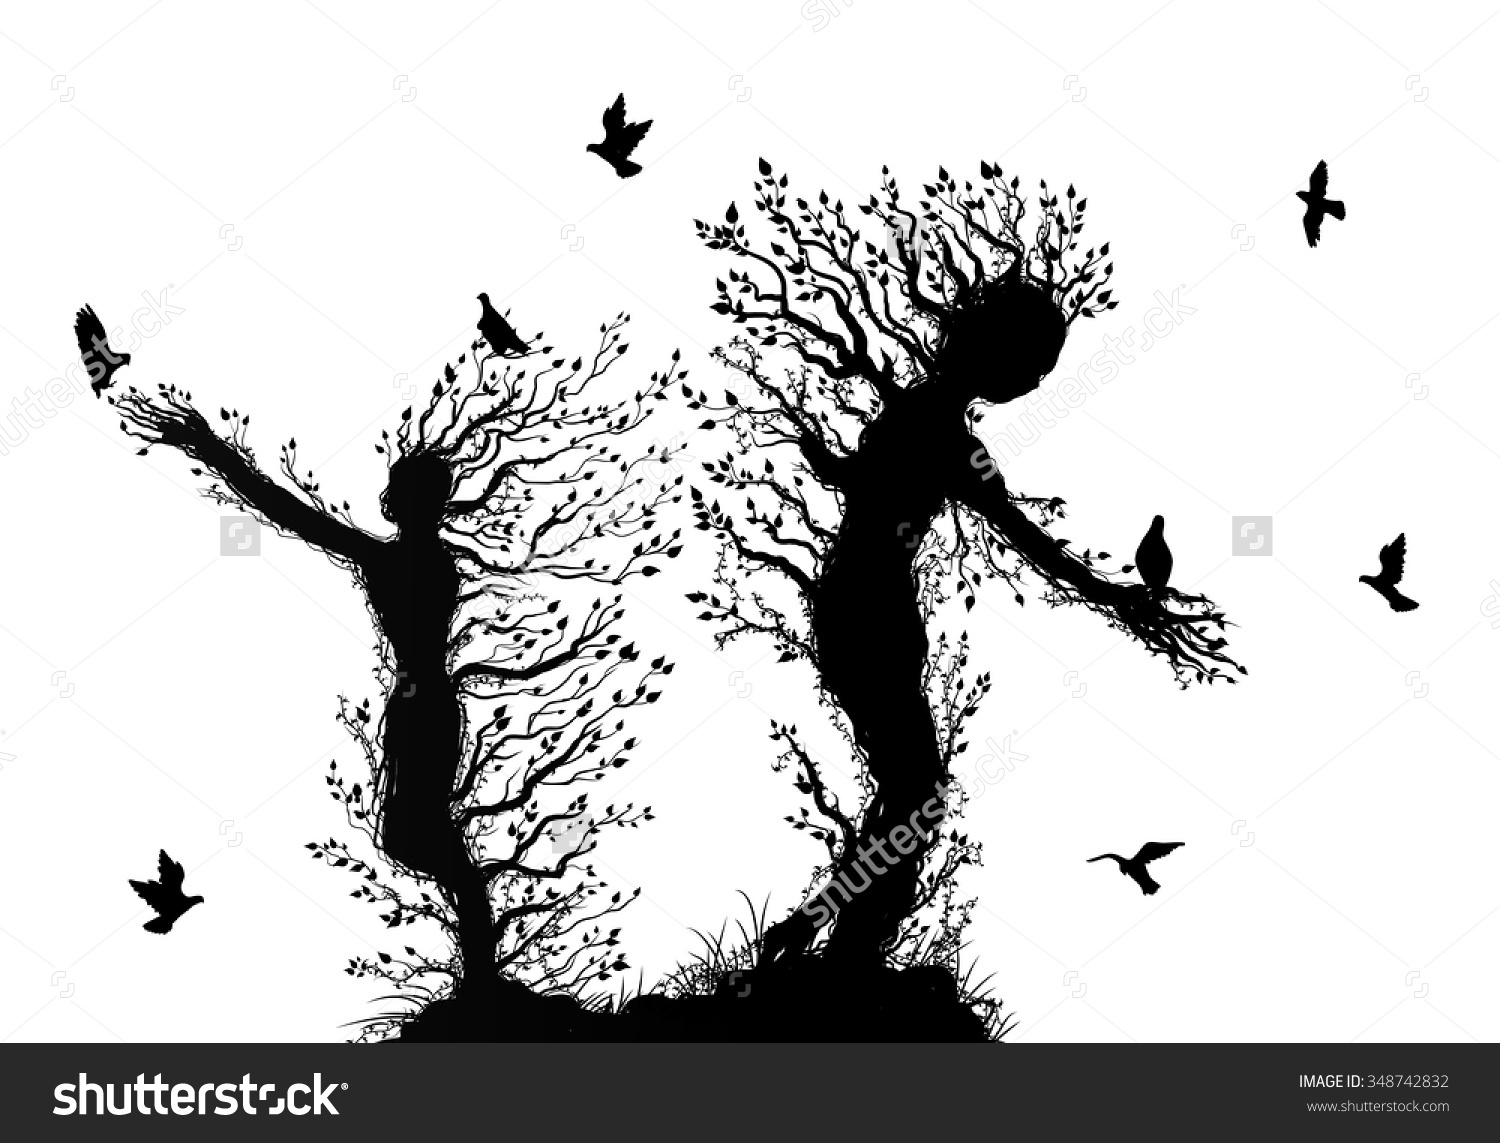 surrealism clipart #19